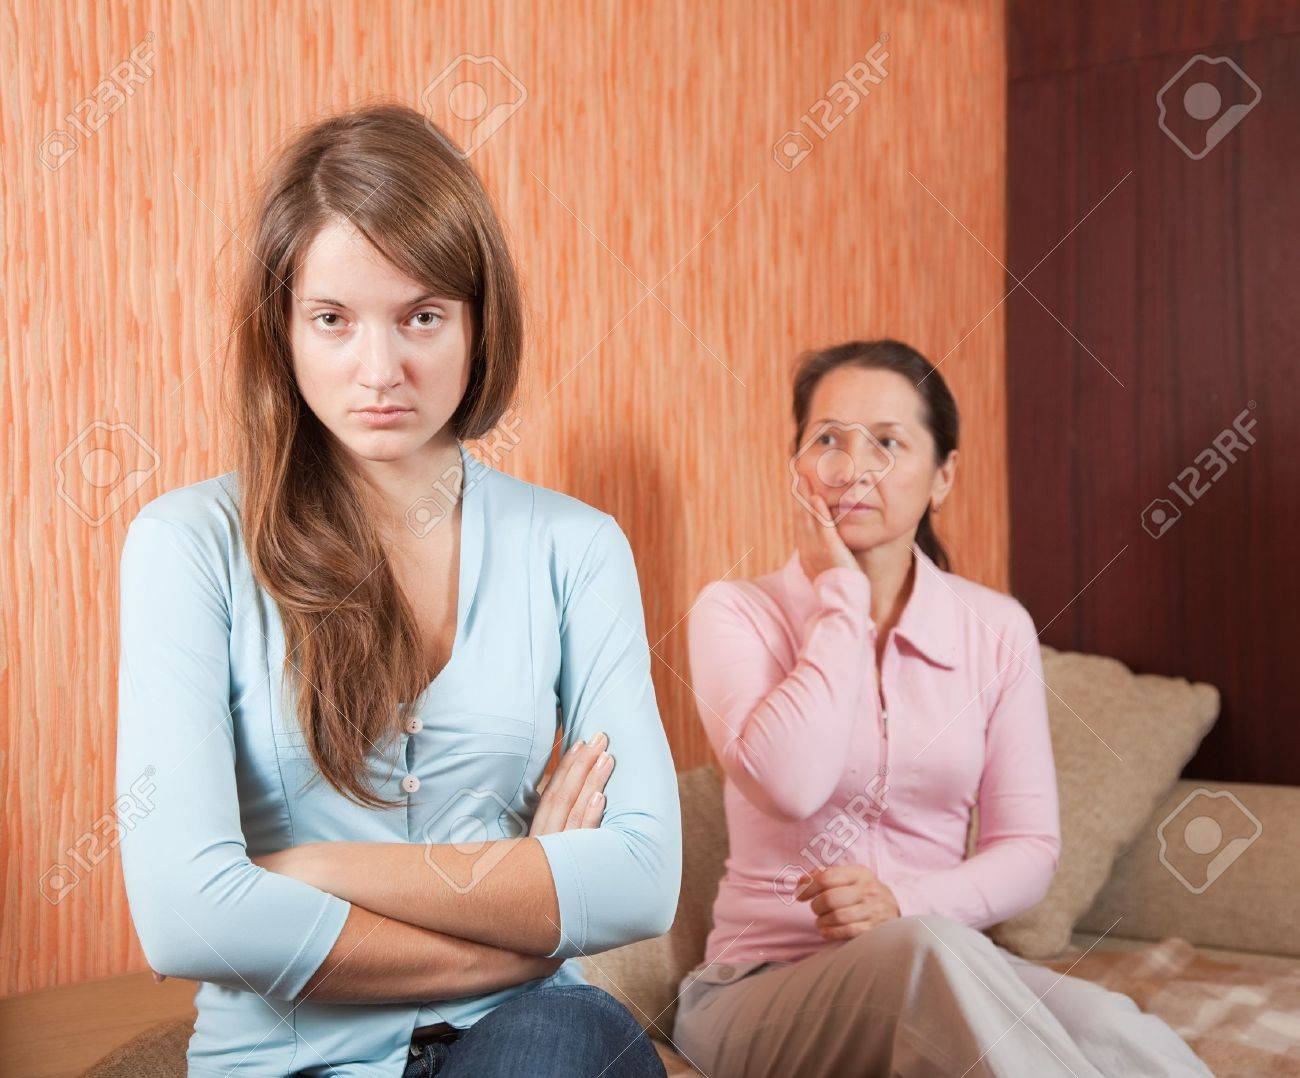 Mother and teen daughter having quarrel at home Stock Photo - 10741829